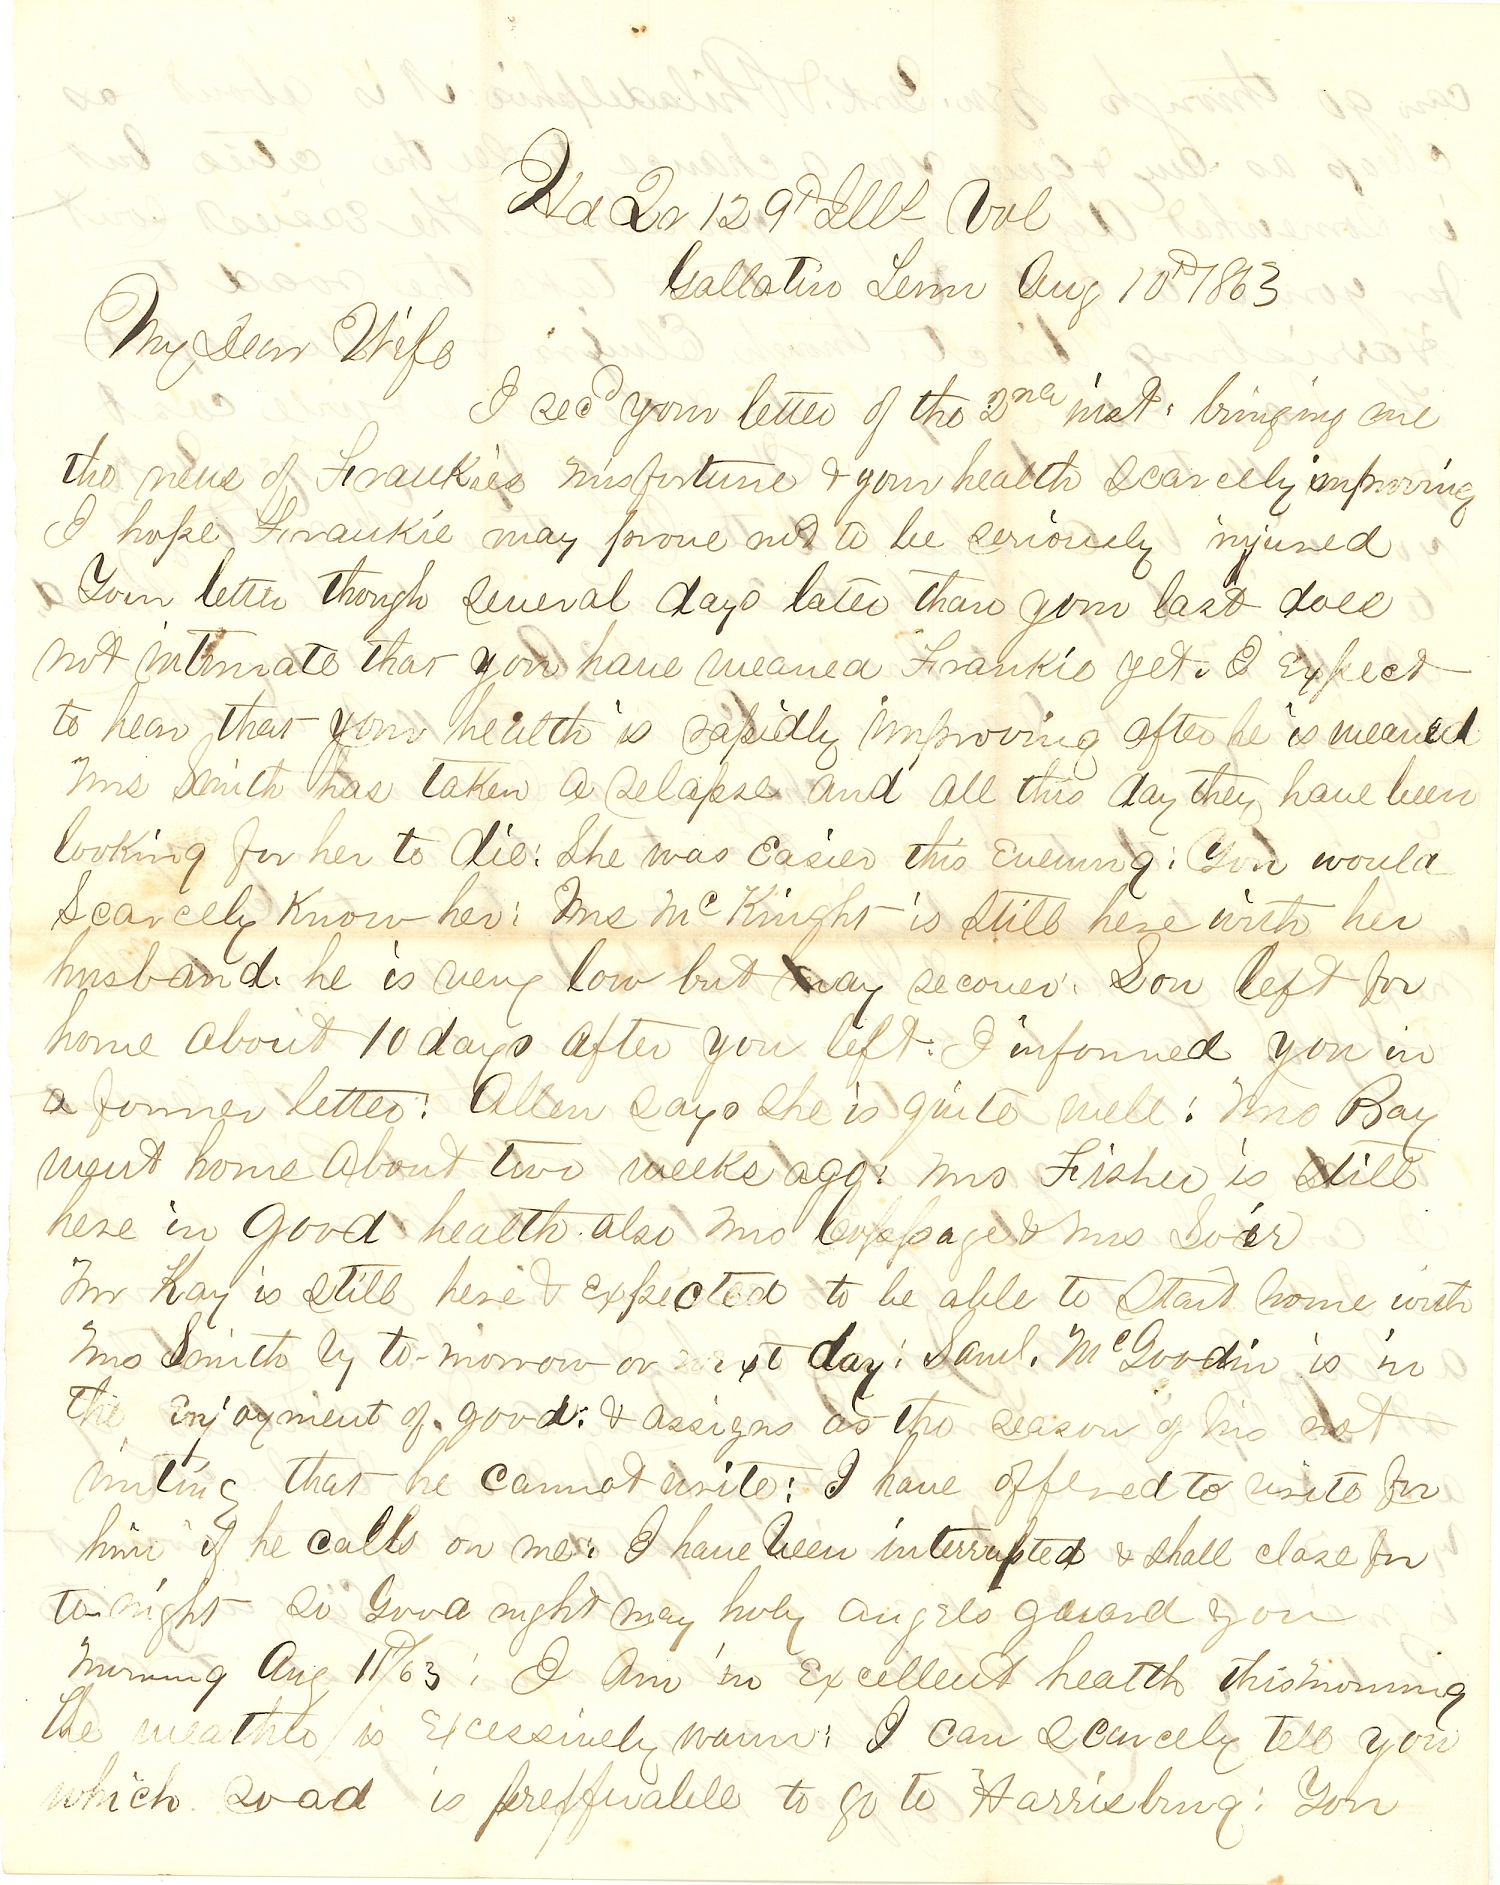 Joseph Culver Letter, August 10, 1863, Page 1